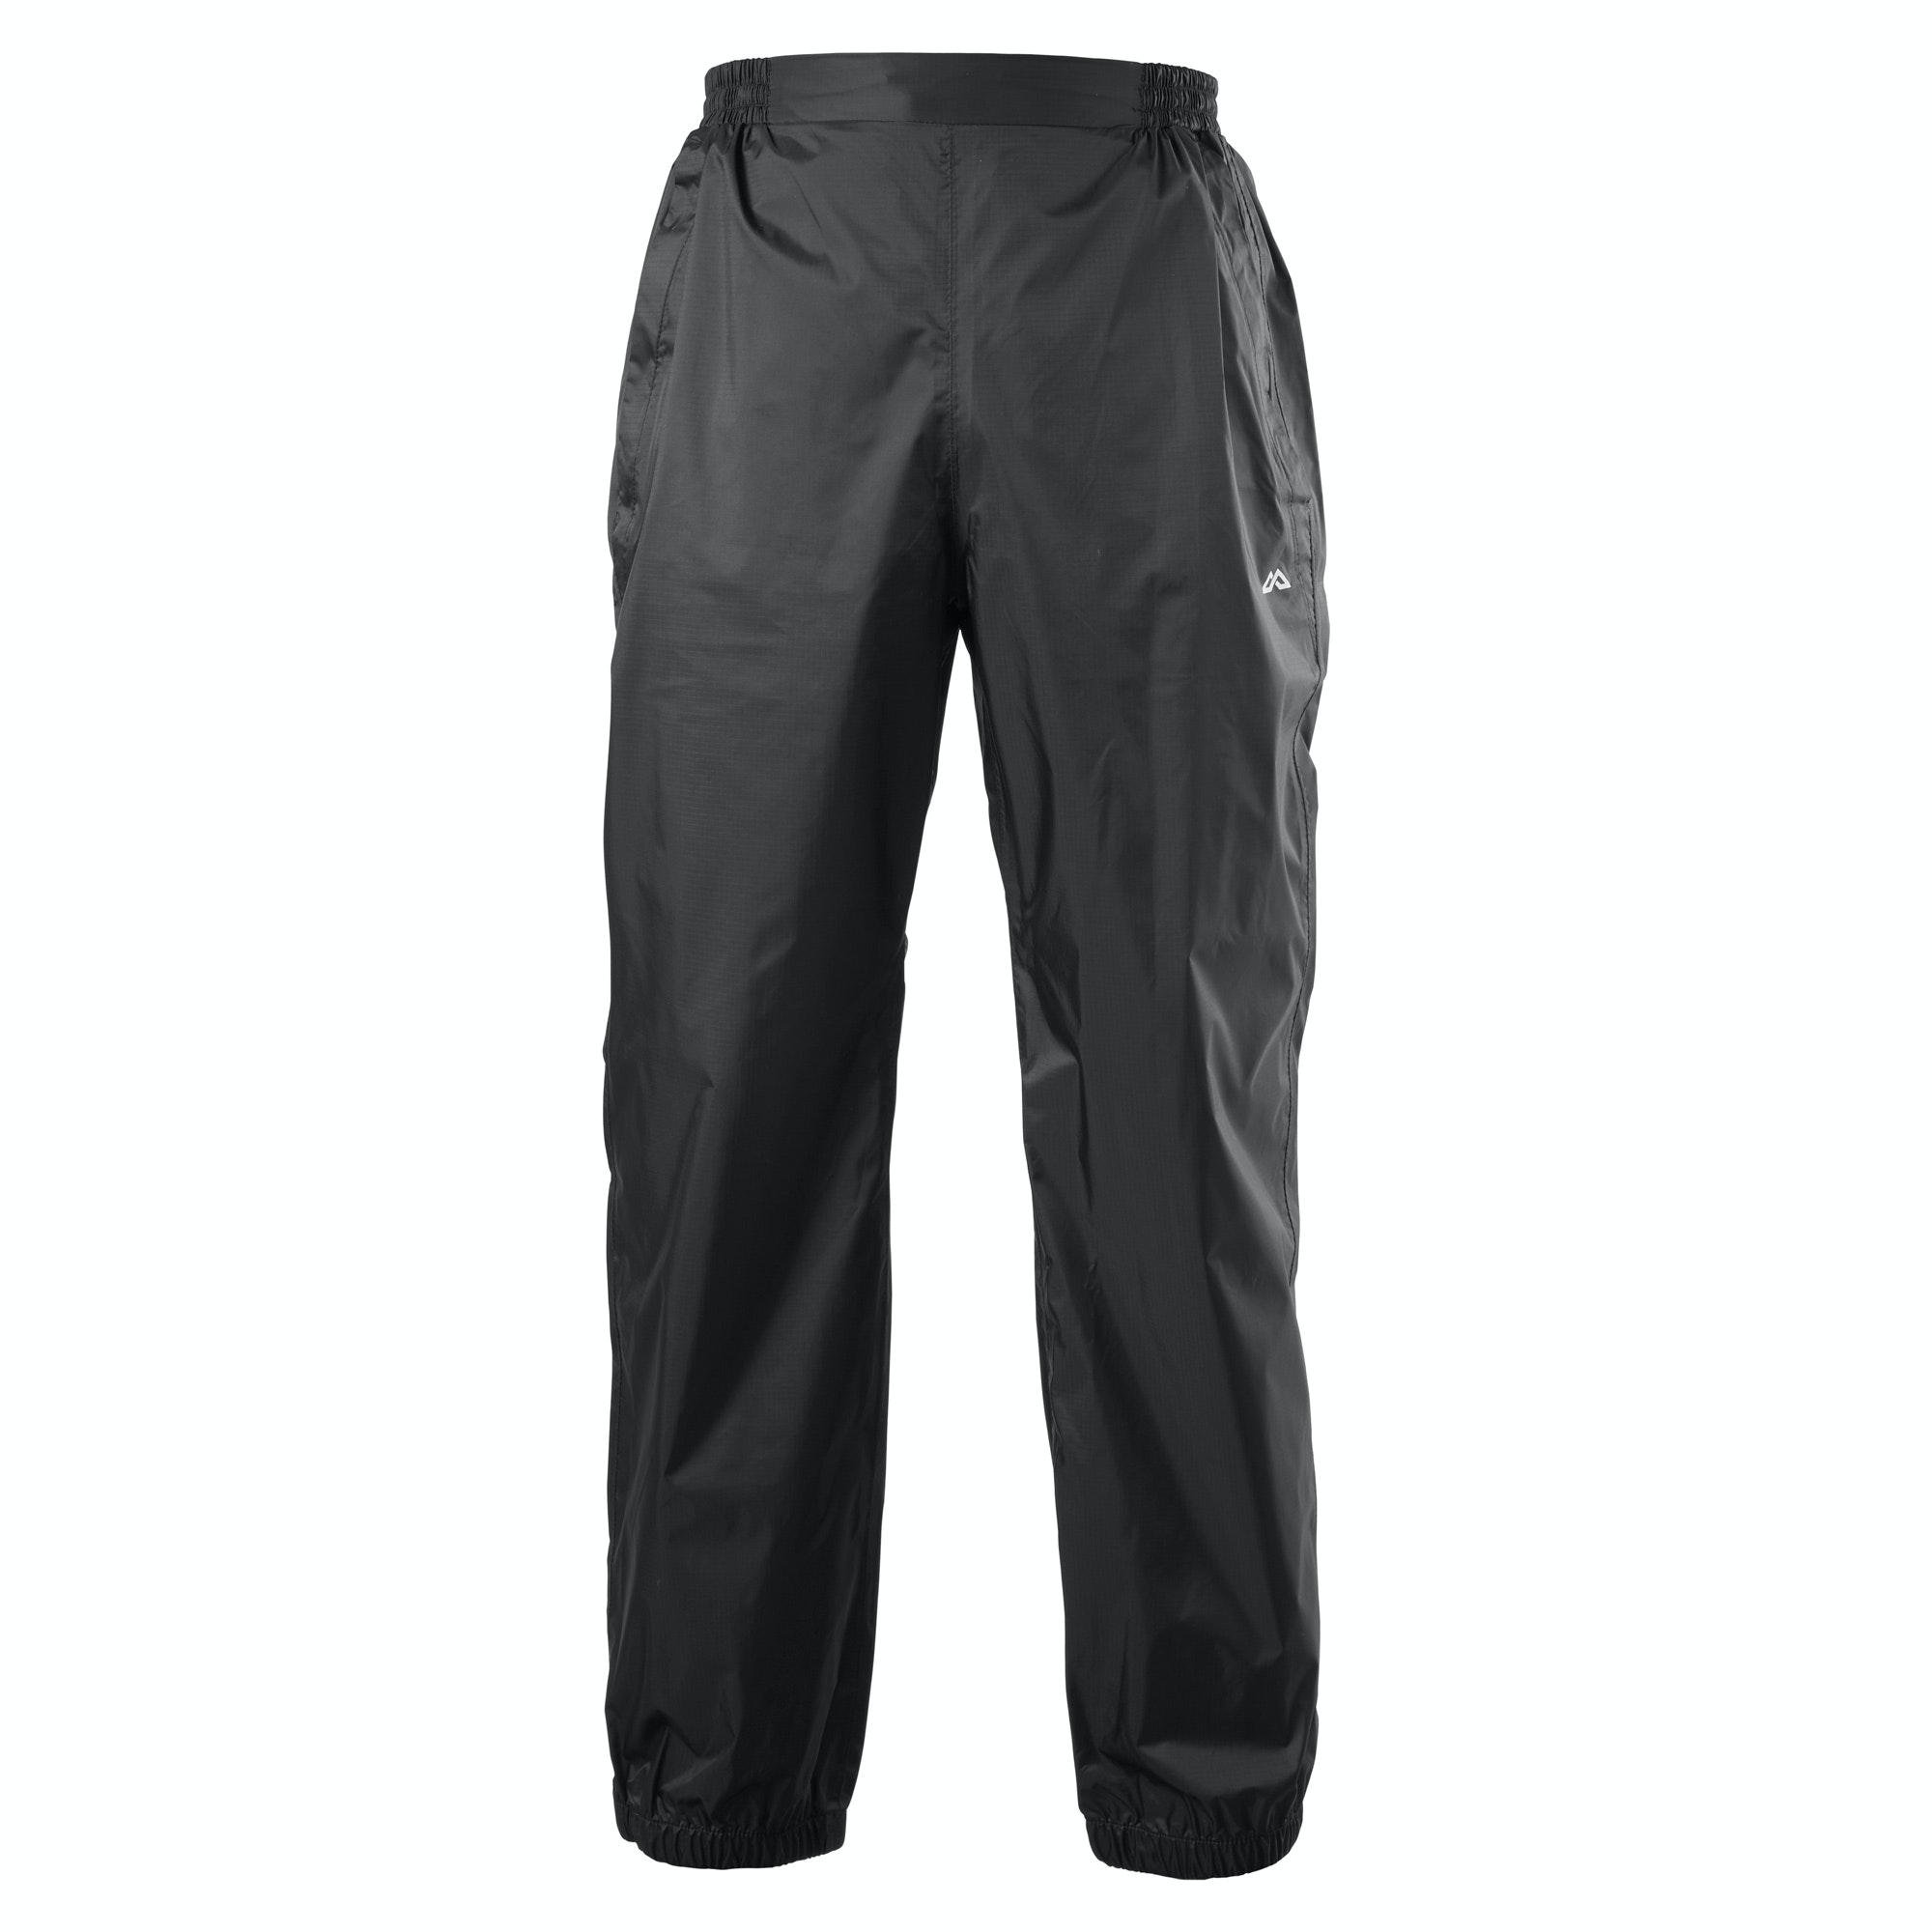 Pocket-it Unisex Rain Pants v3